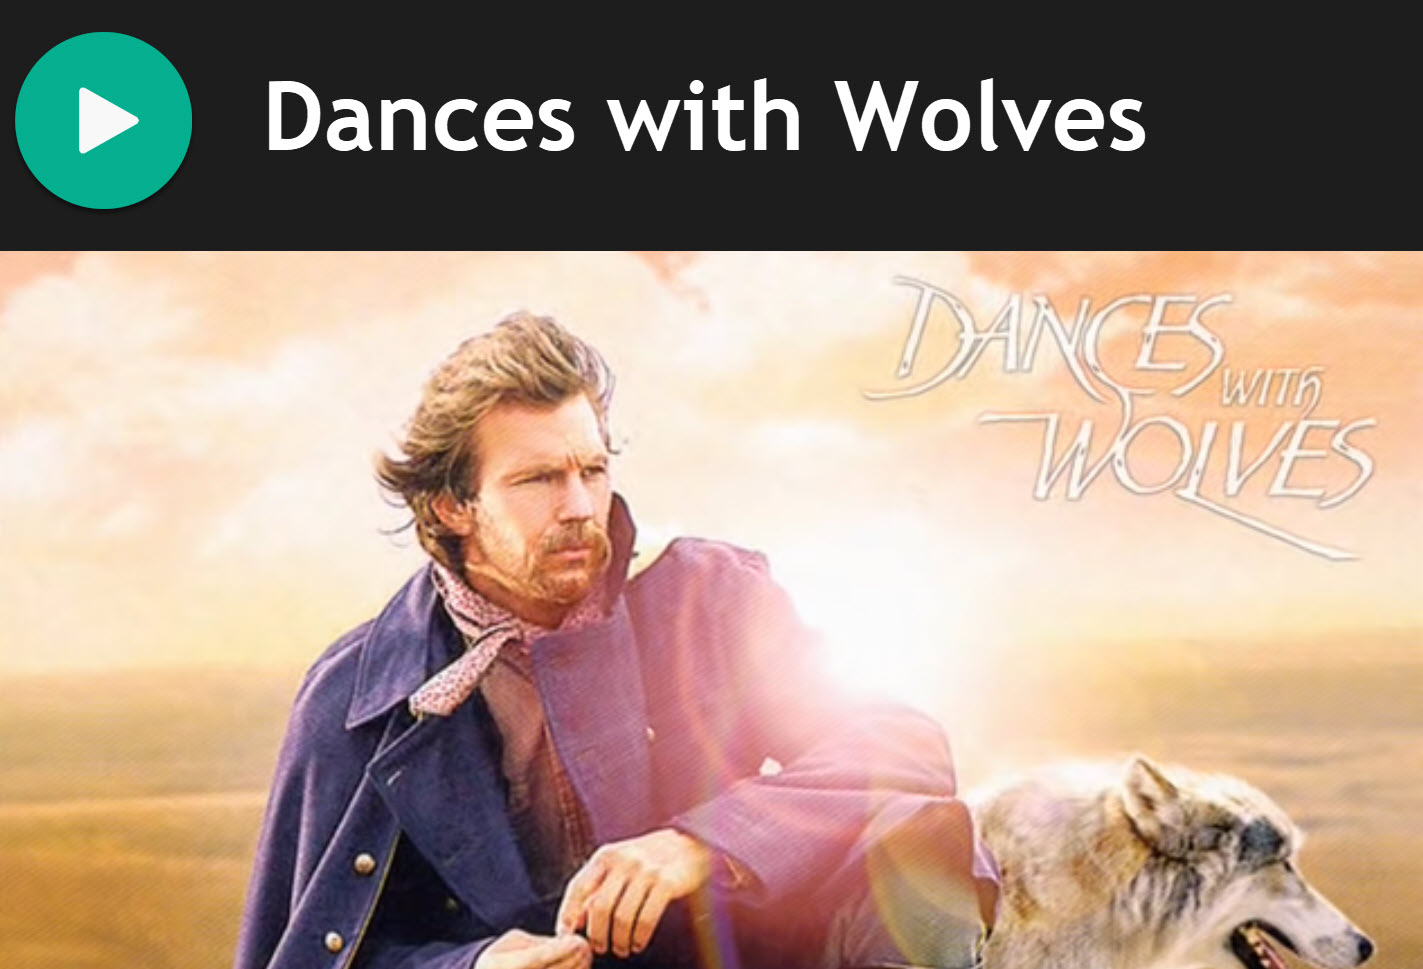 Dances with Wolves for Smallpipes